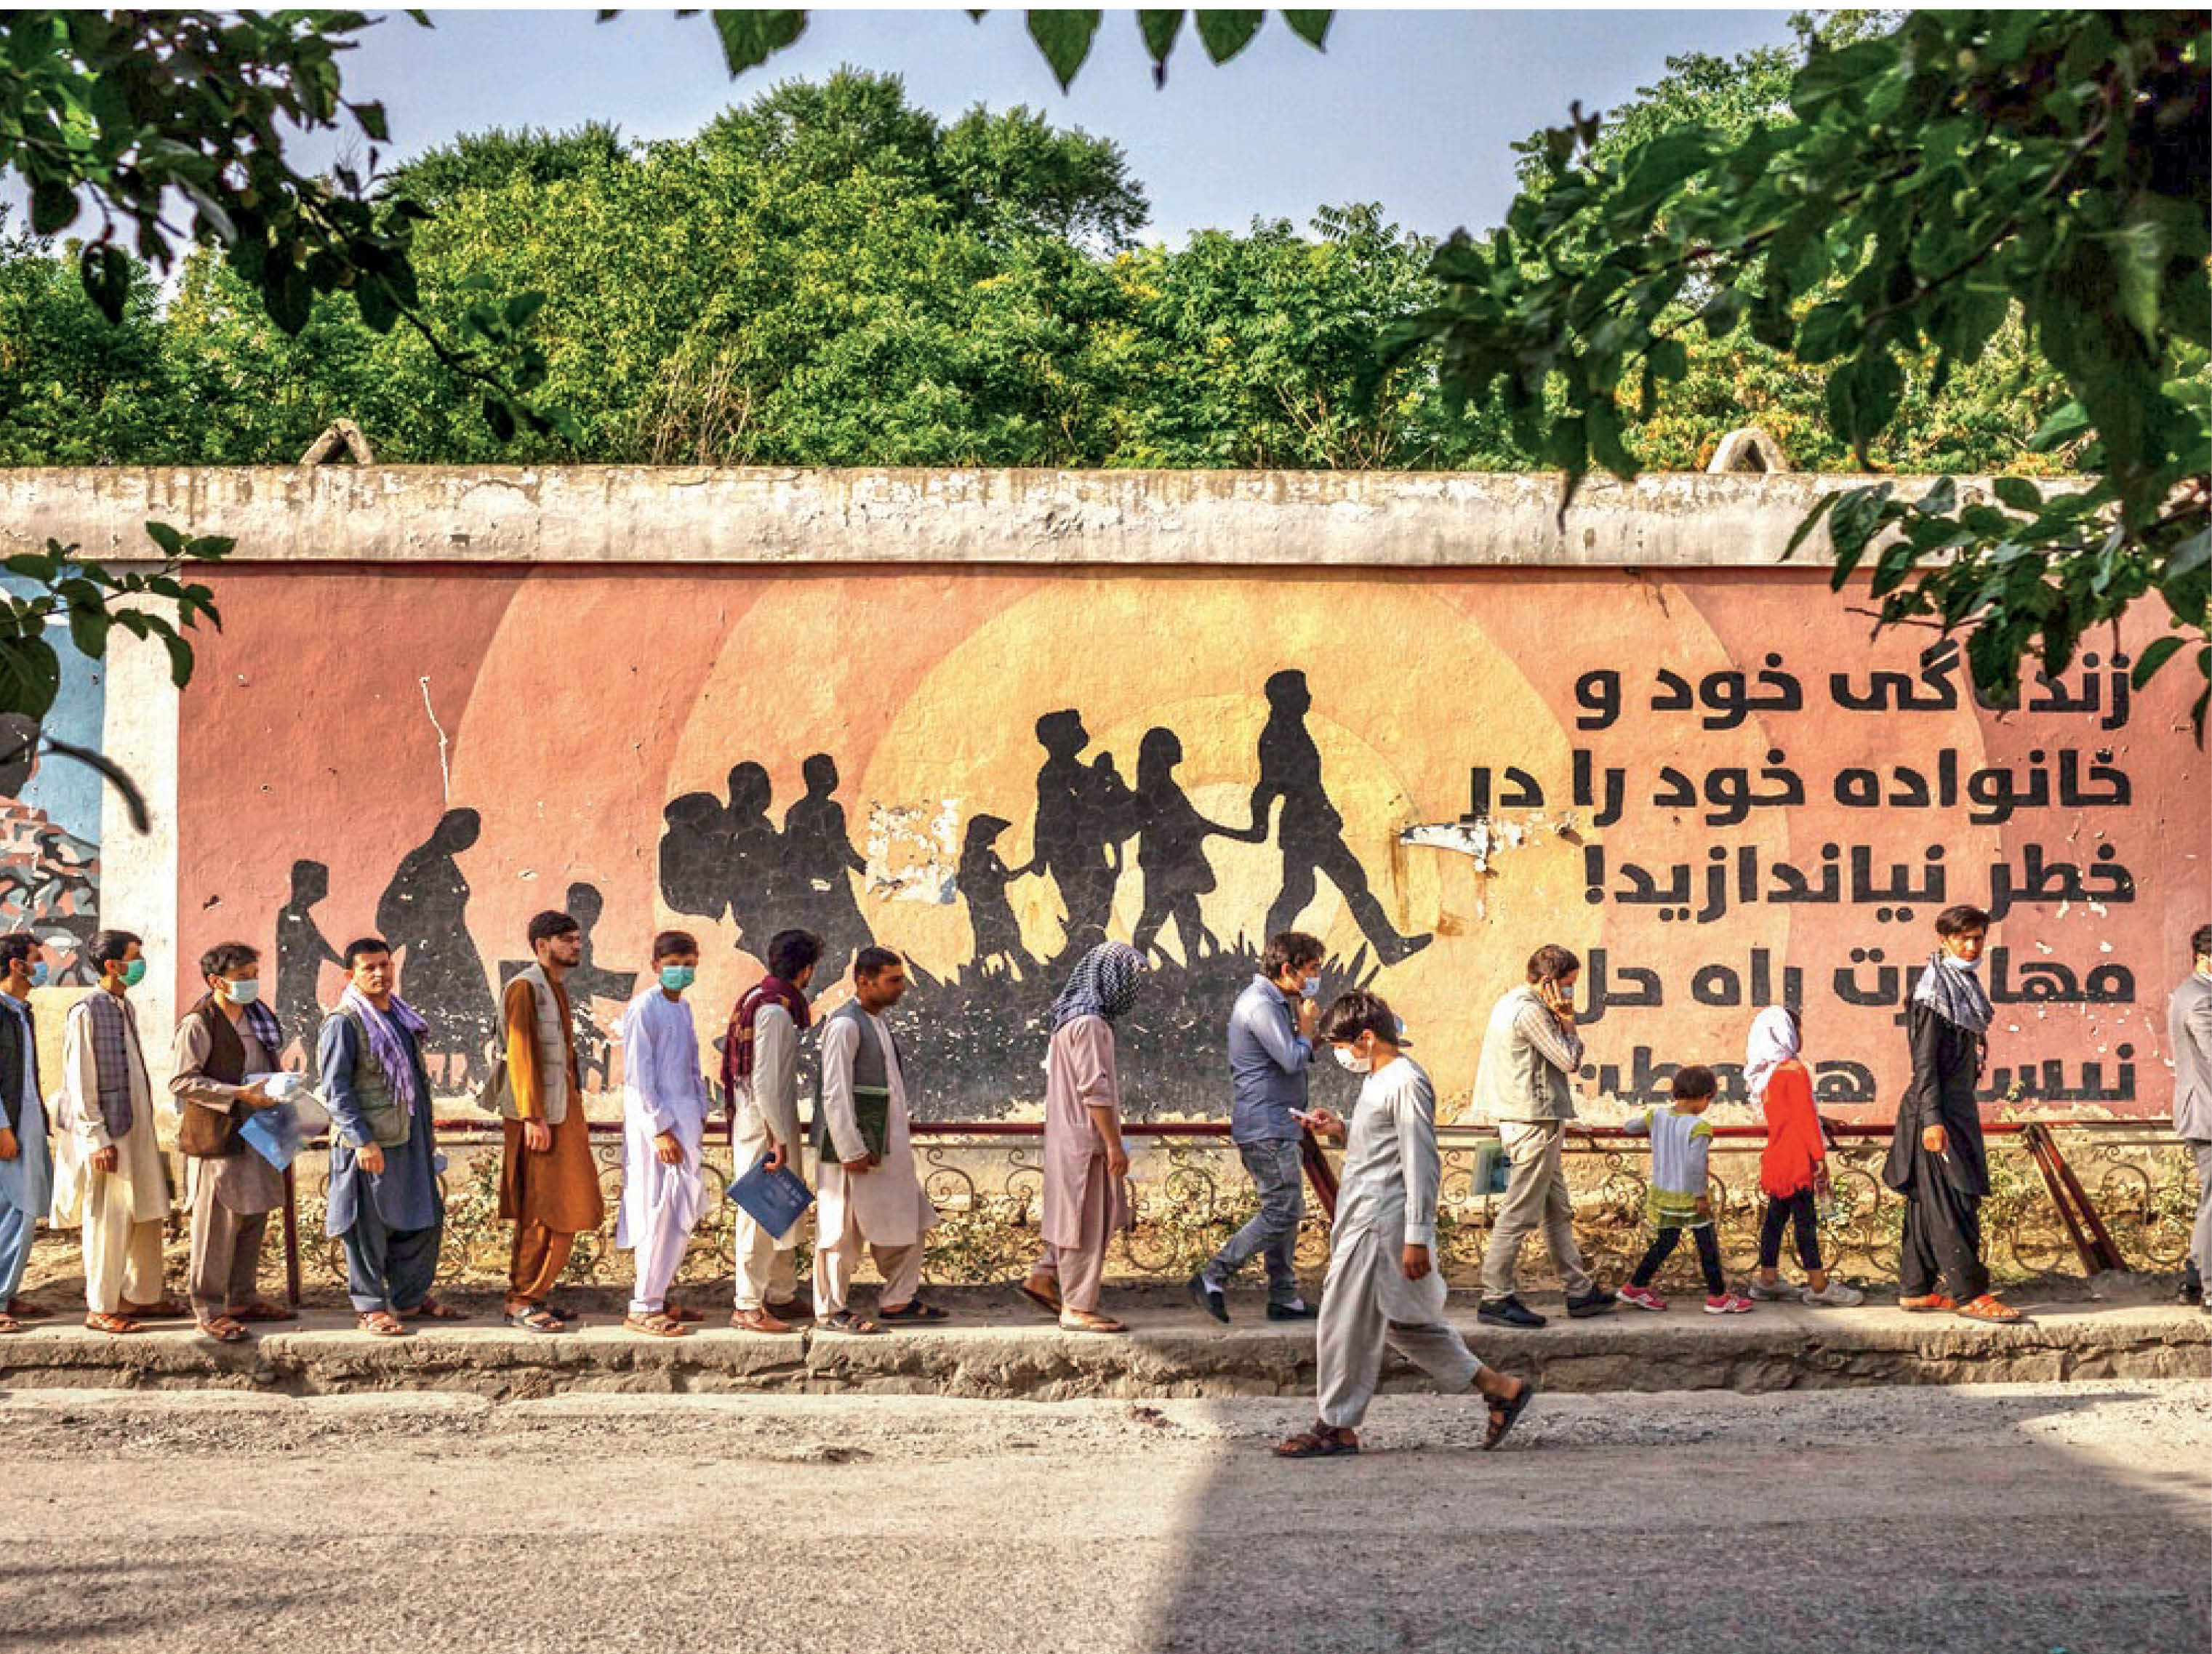 The wall seen in the picture appeals to the people not to flee from Afghanistan.  But in this passport office in Kabul, there are similar long queues of people every day, because they want to leave the country because of the Taliban.  - Dainik Bhaskar